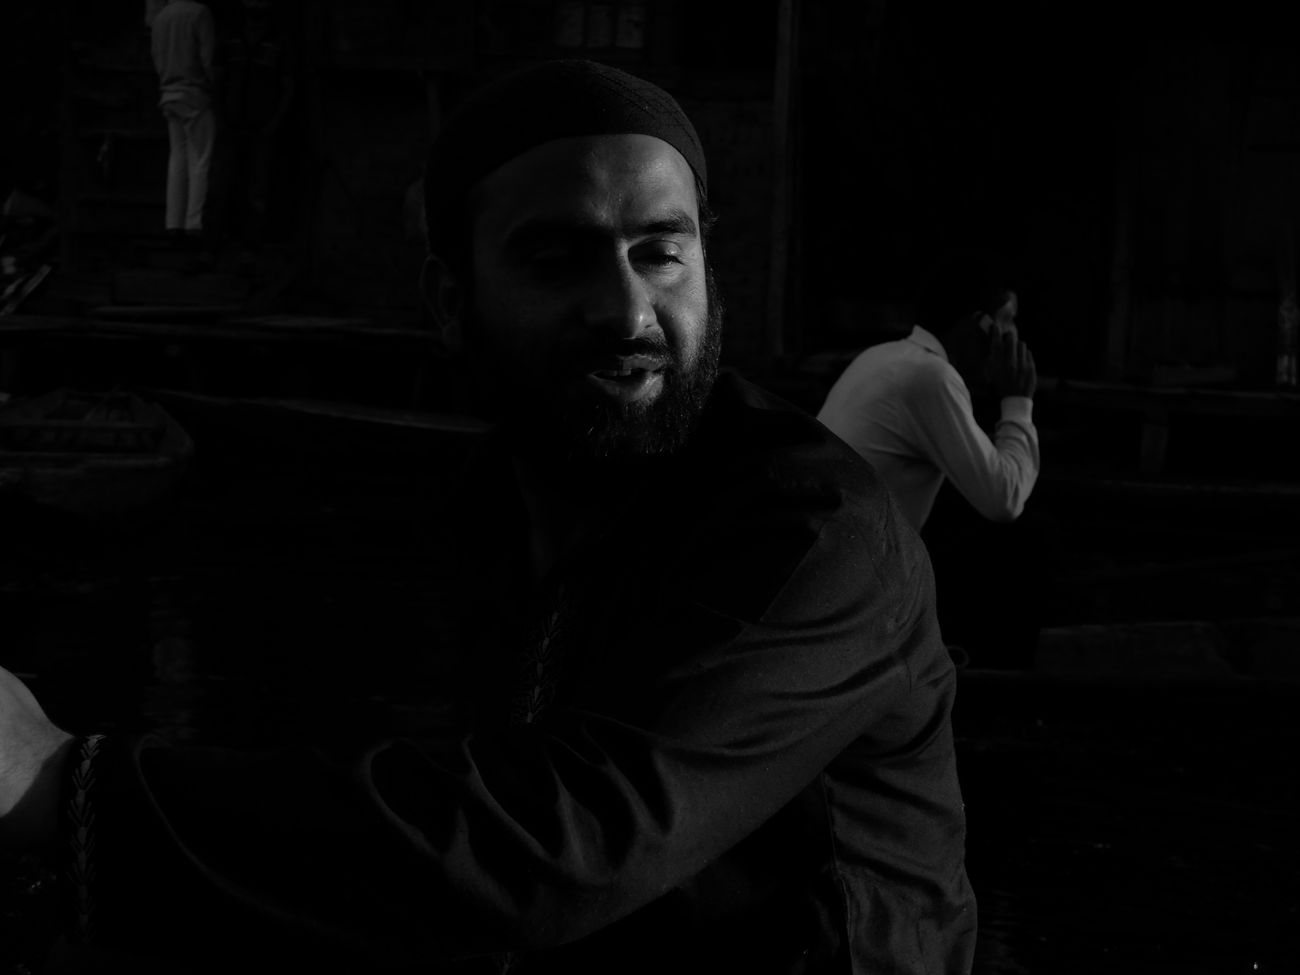 Adult Adults Only Beard Desaturated Human Body Part Human Hand Males  Men Night One Man Only One Person Only Men Outdoors People Portrait Real People Srinagar Kashmir Young Adult